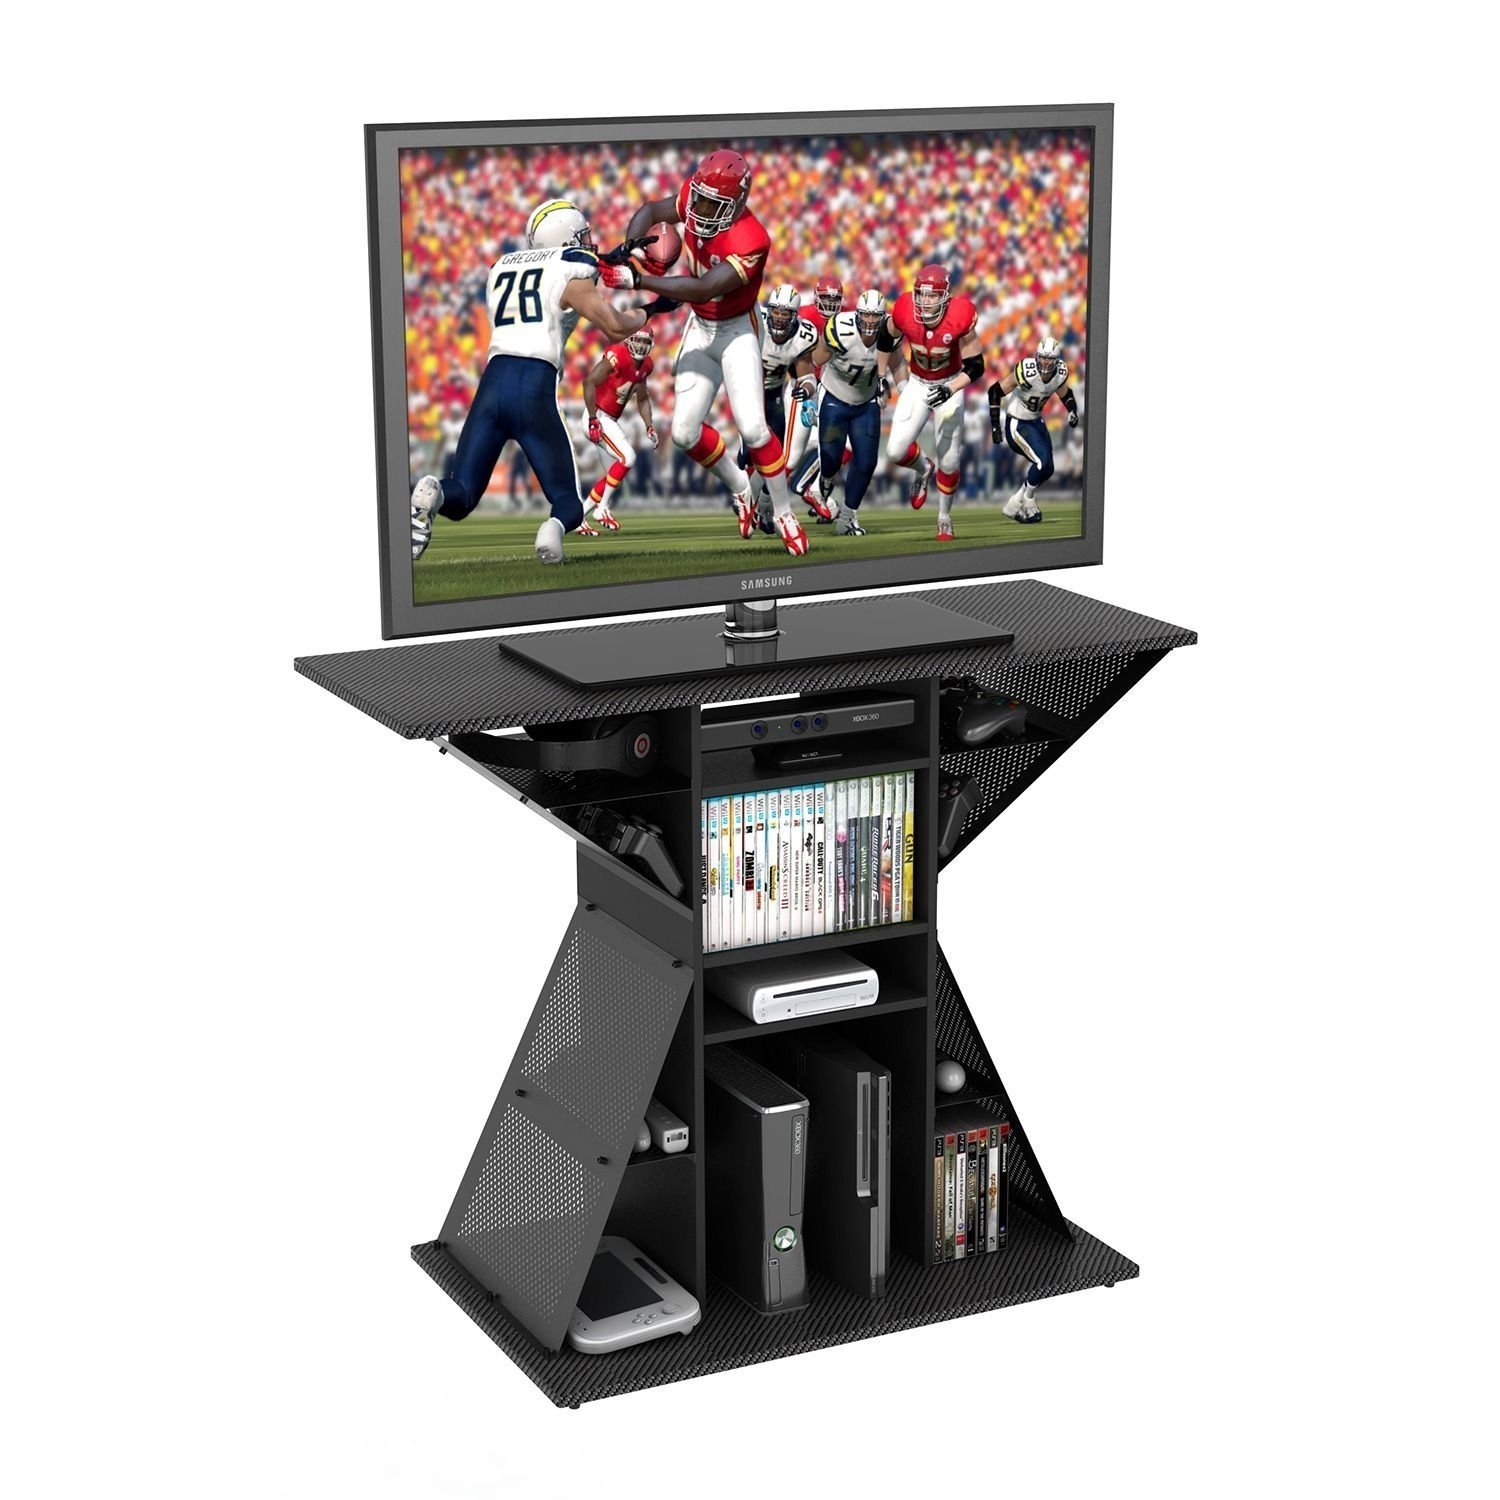 gaming tv stand Amazon.com: Atlantic Phoenix Gaming Hub-TV Stand - Fits up to a 42 inch TV  PN 45535885B: Kitchen u0026 Dining